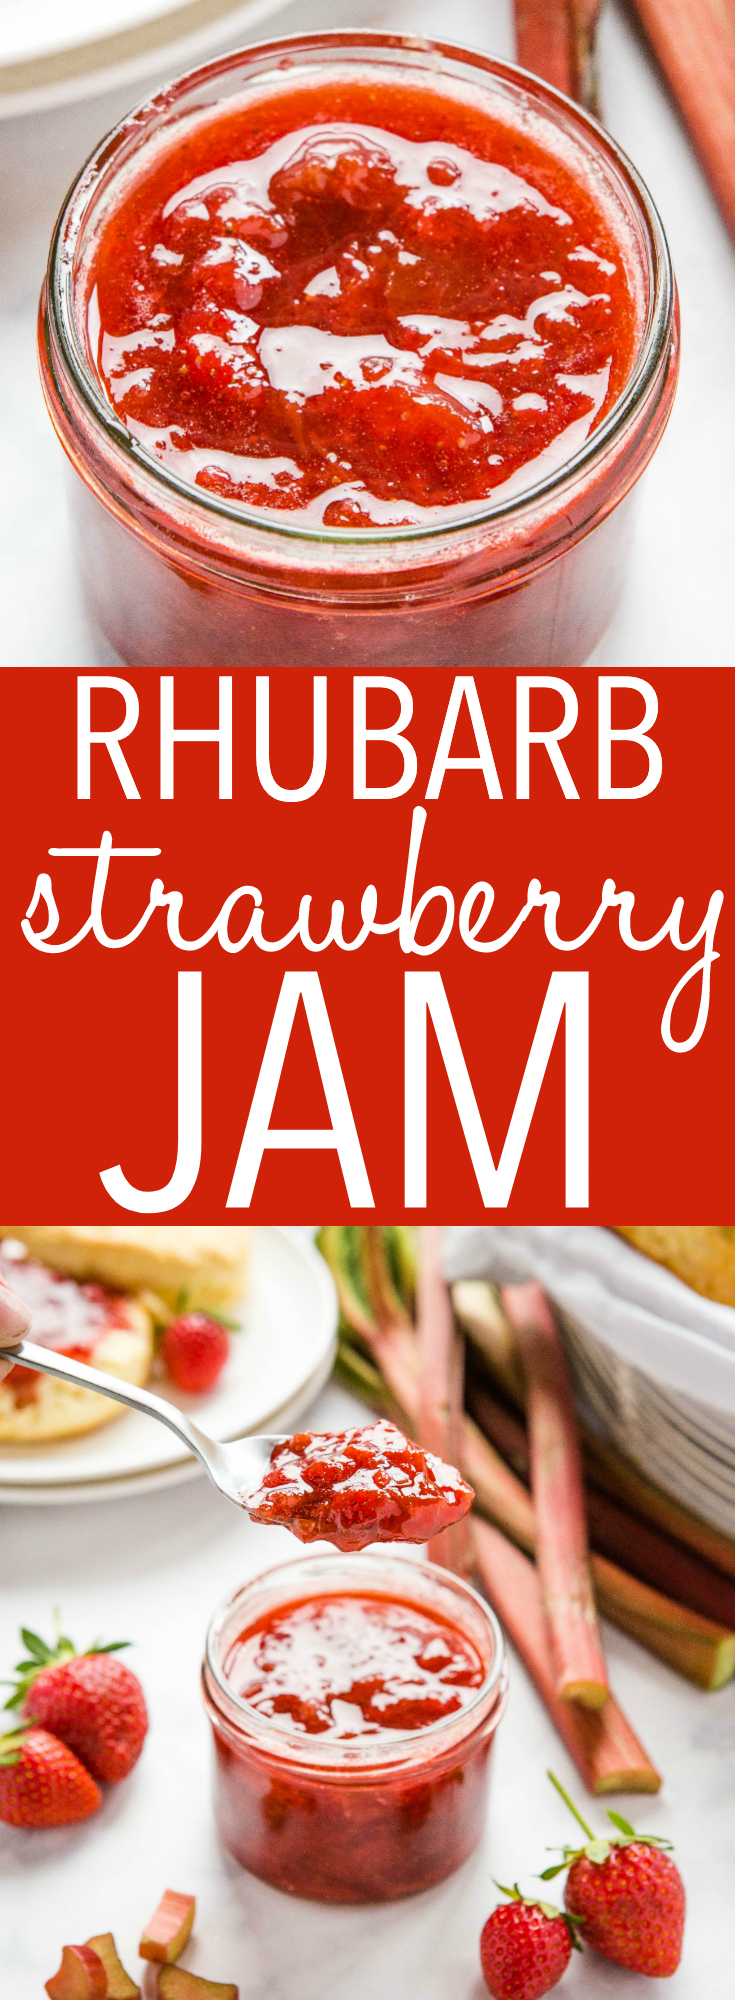 This Strawberry Rhubarb Freezer Jam is a simple and easy homemade jam recipe made with fresh strawberries & rhubarb! 4 ingredients, no pectin, & no canning! Recipe from thebusybaker.ca! #strawberryrhubarb #jam #homemadejam #freezerjam #strawberryrhubarbjam via @busybakerblog